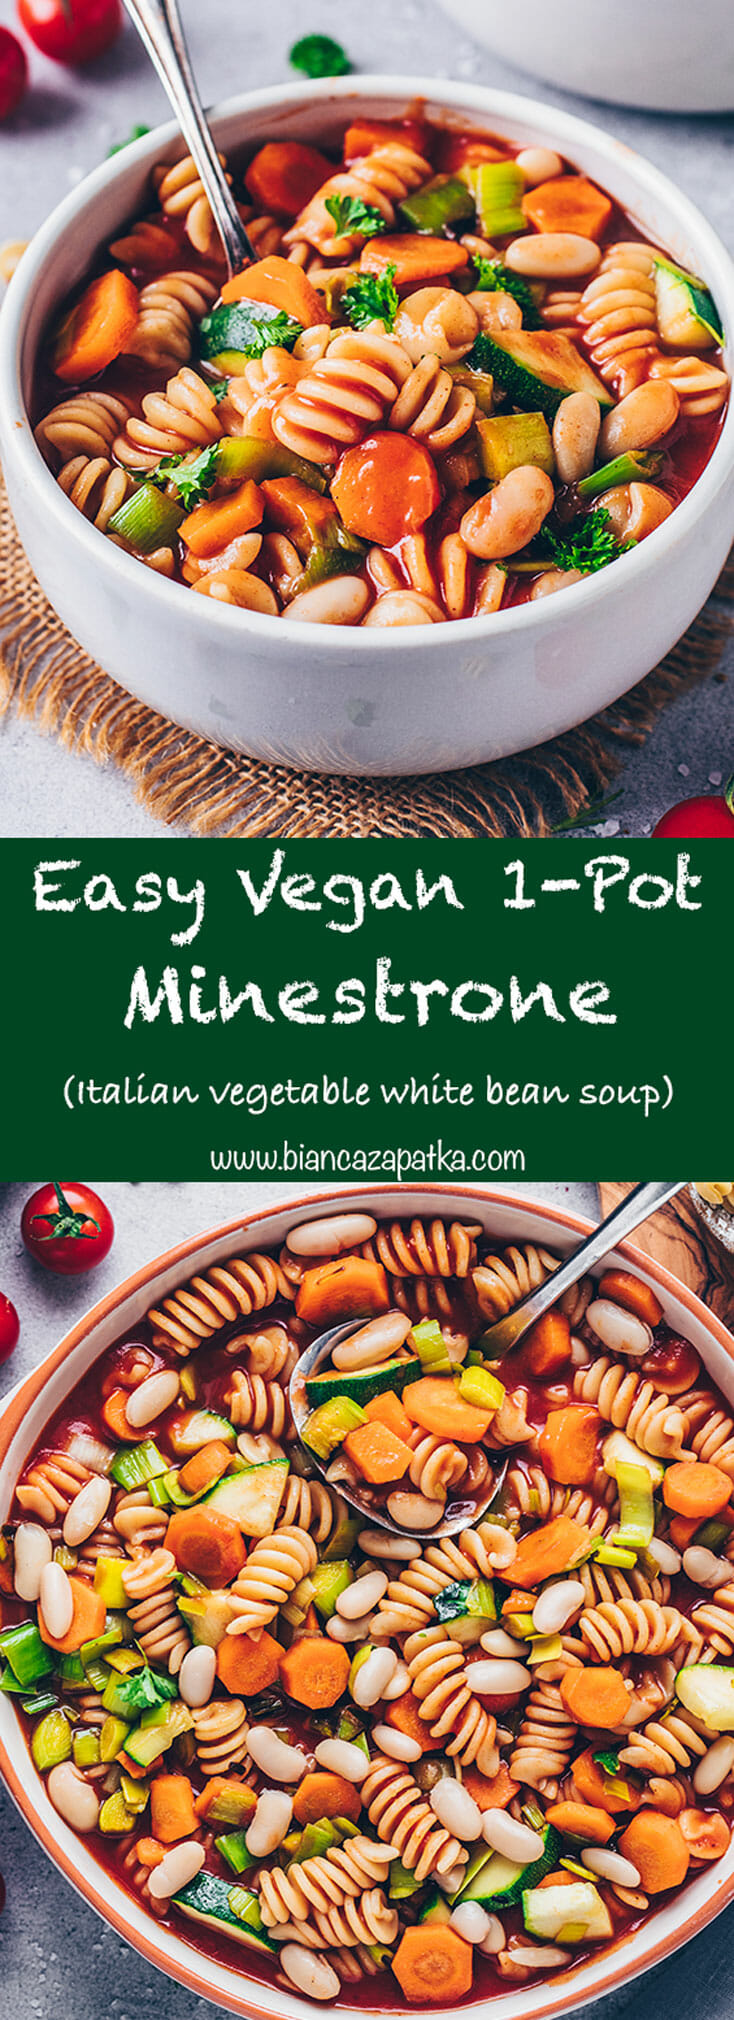 Vegan Minestrone Soup (Easy one-pot vegetable white bean stew with pasta)